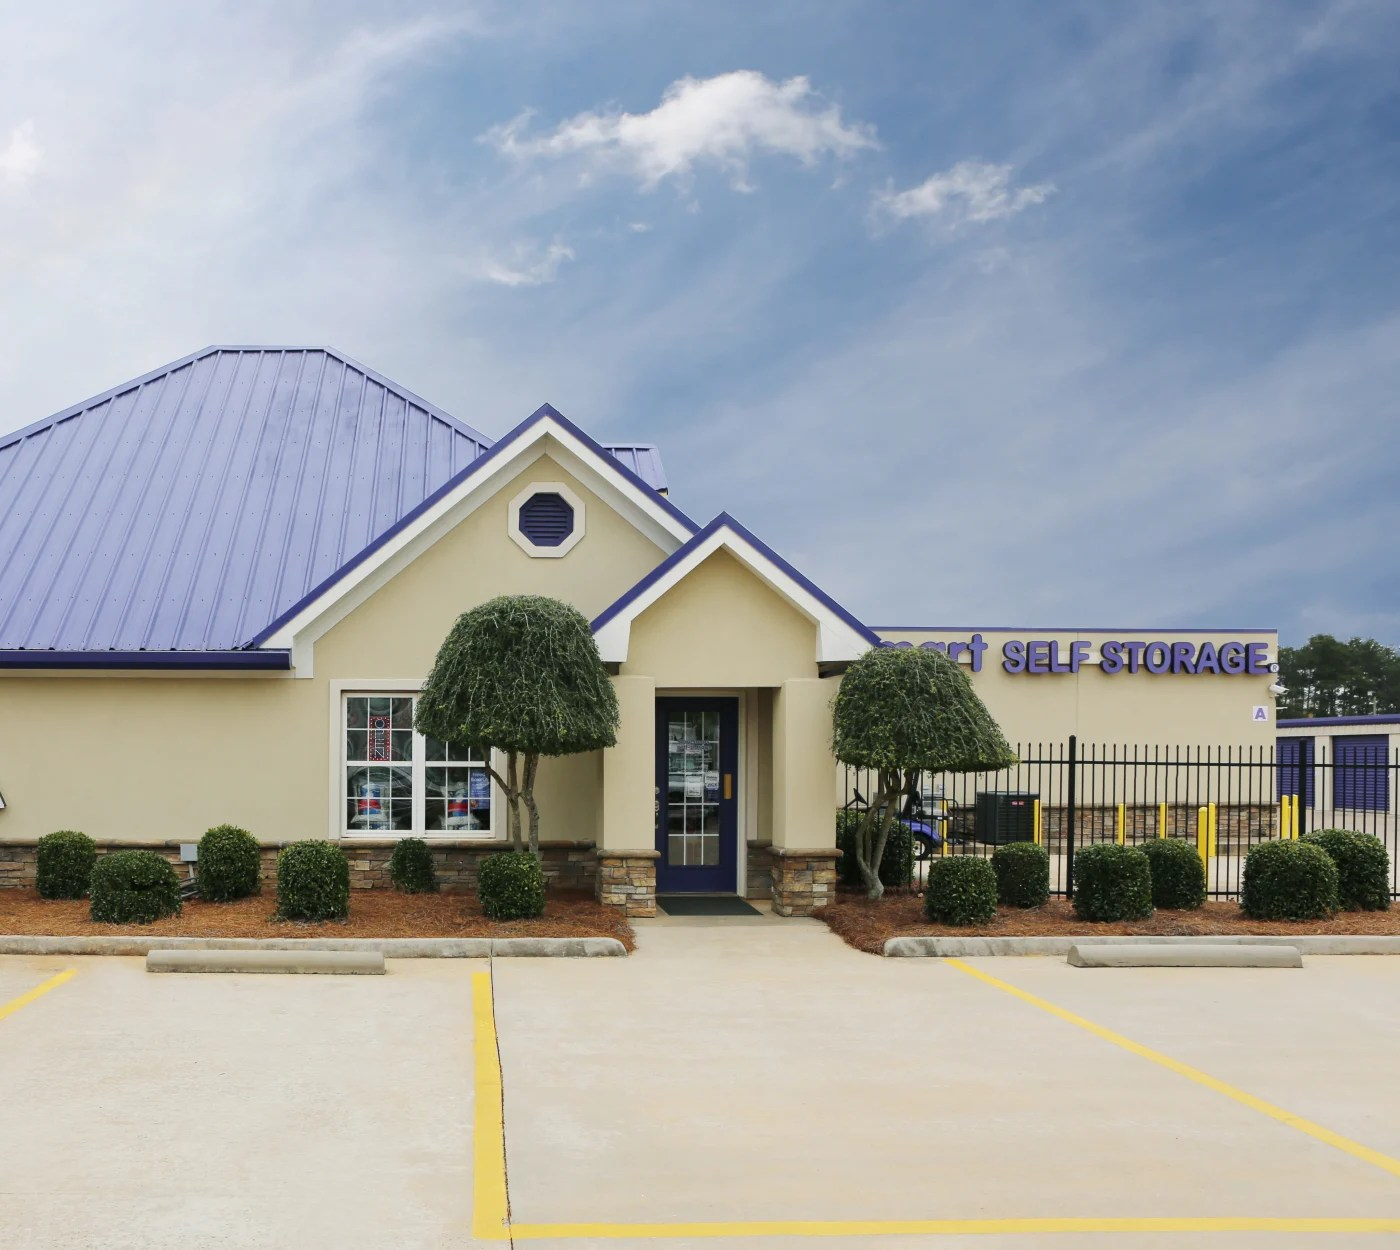 Storage Unit Cost Self Storage Units Warner Robins Ga Storage Costs